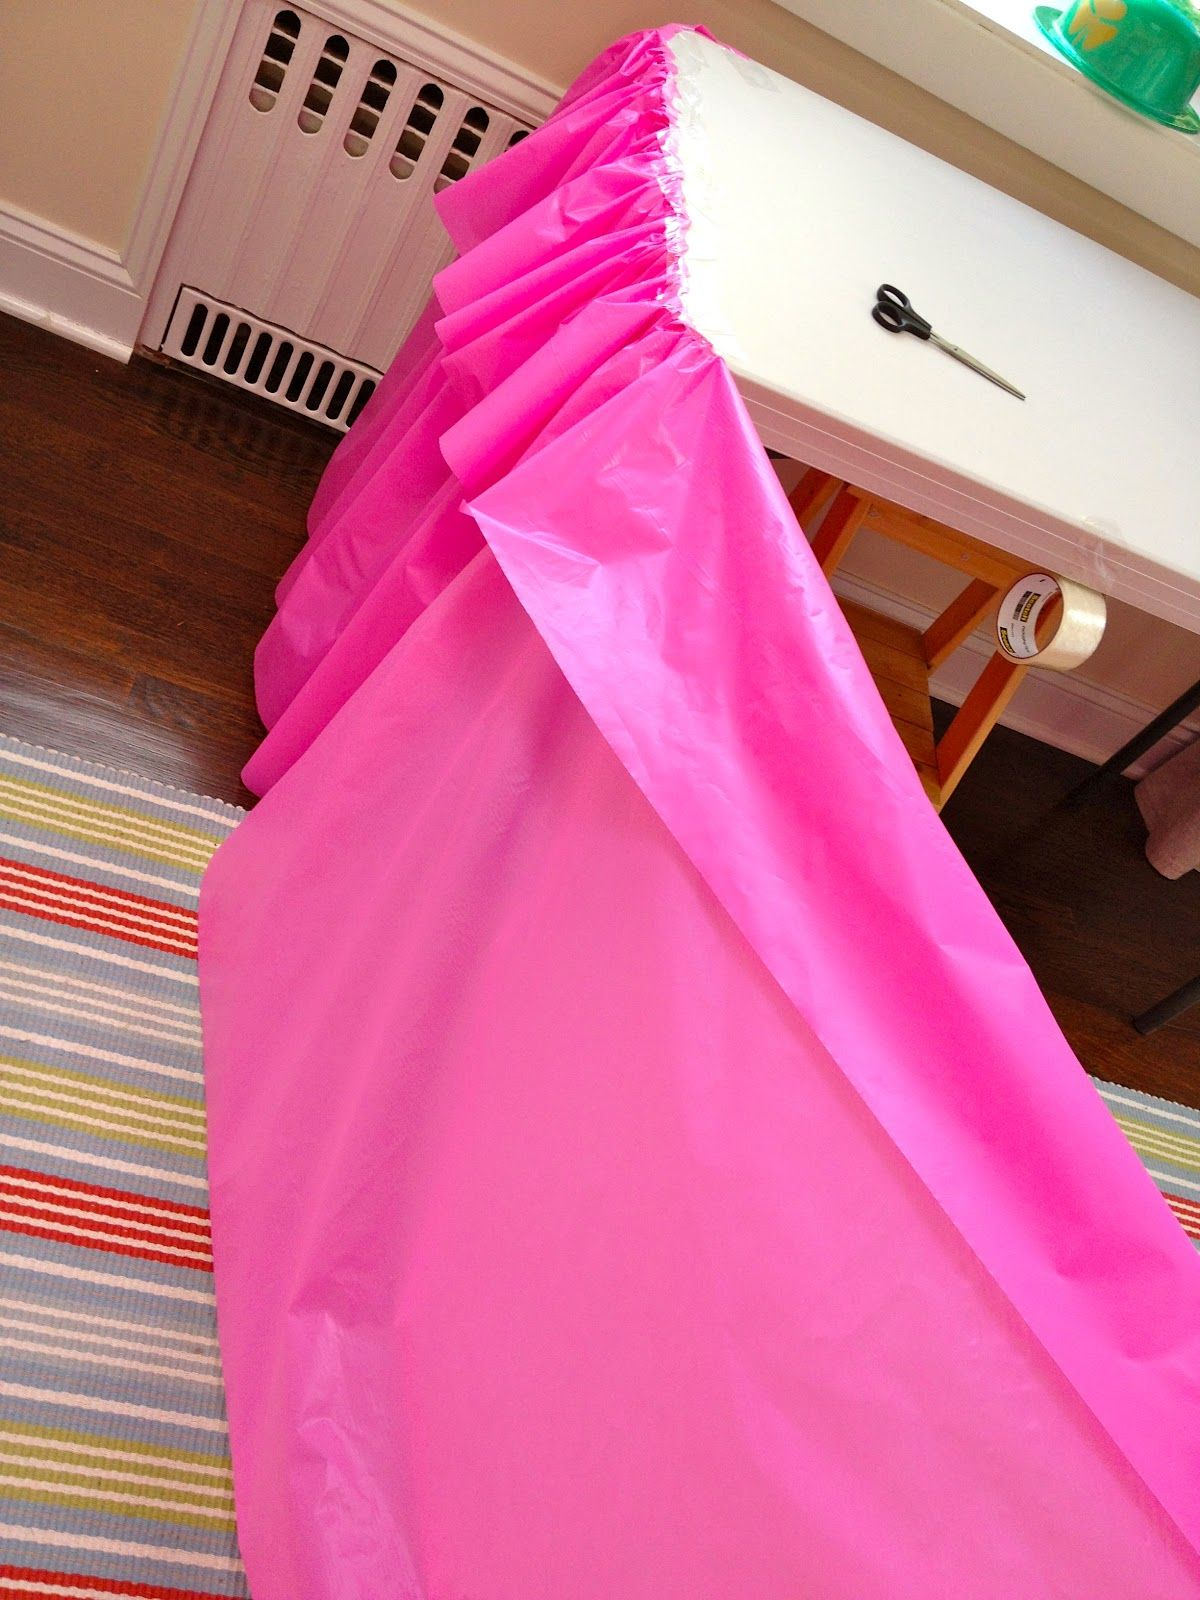 How To Make A Plastic Table Cloth Look Like A Ruffled Table Skirt   Cute!